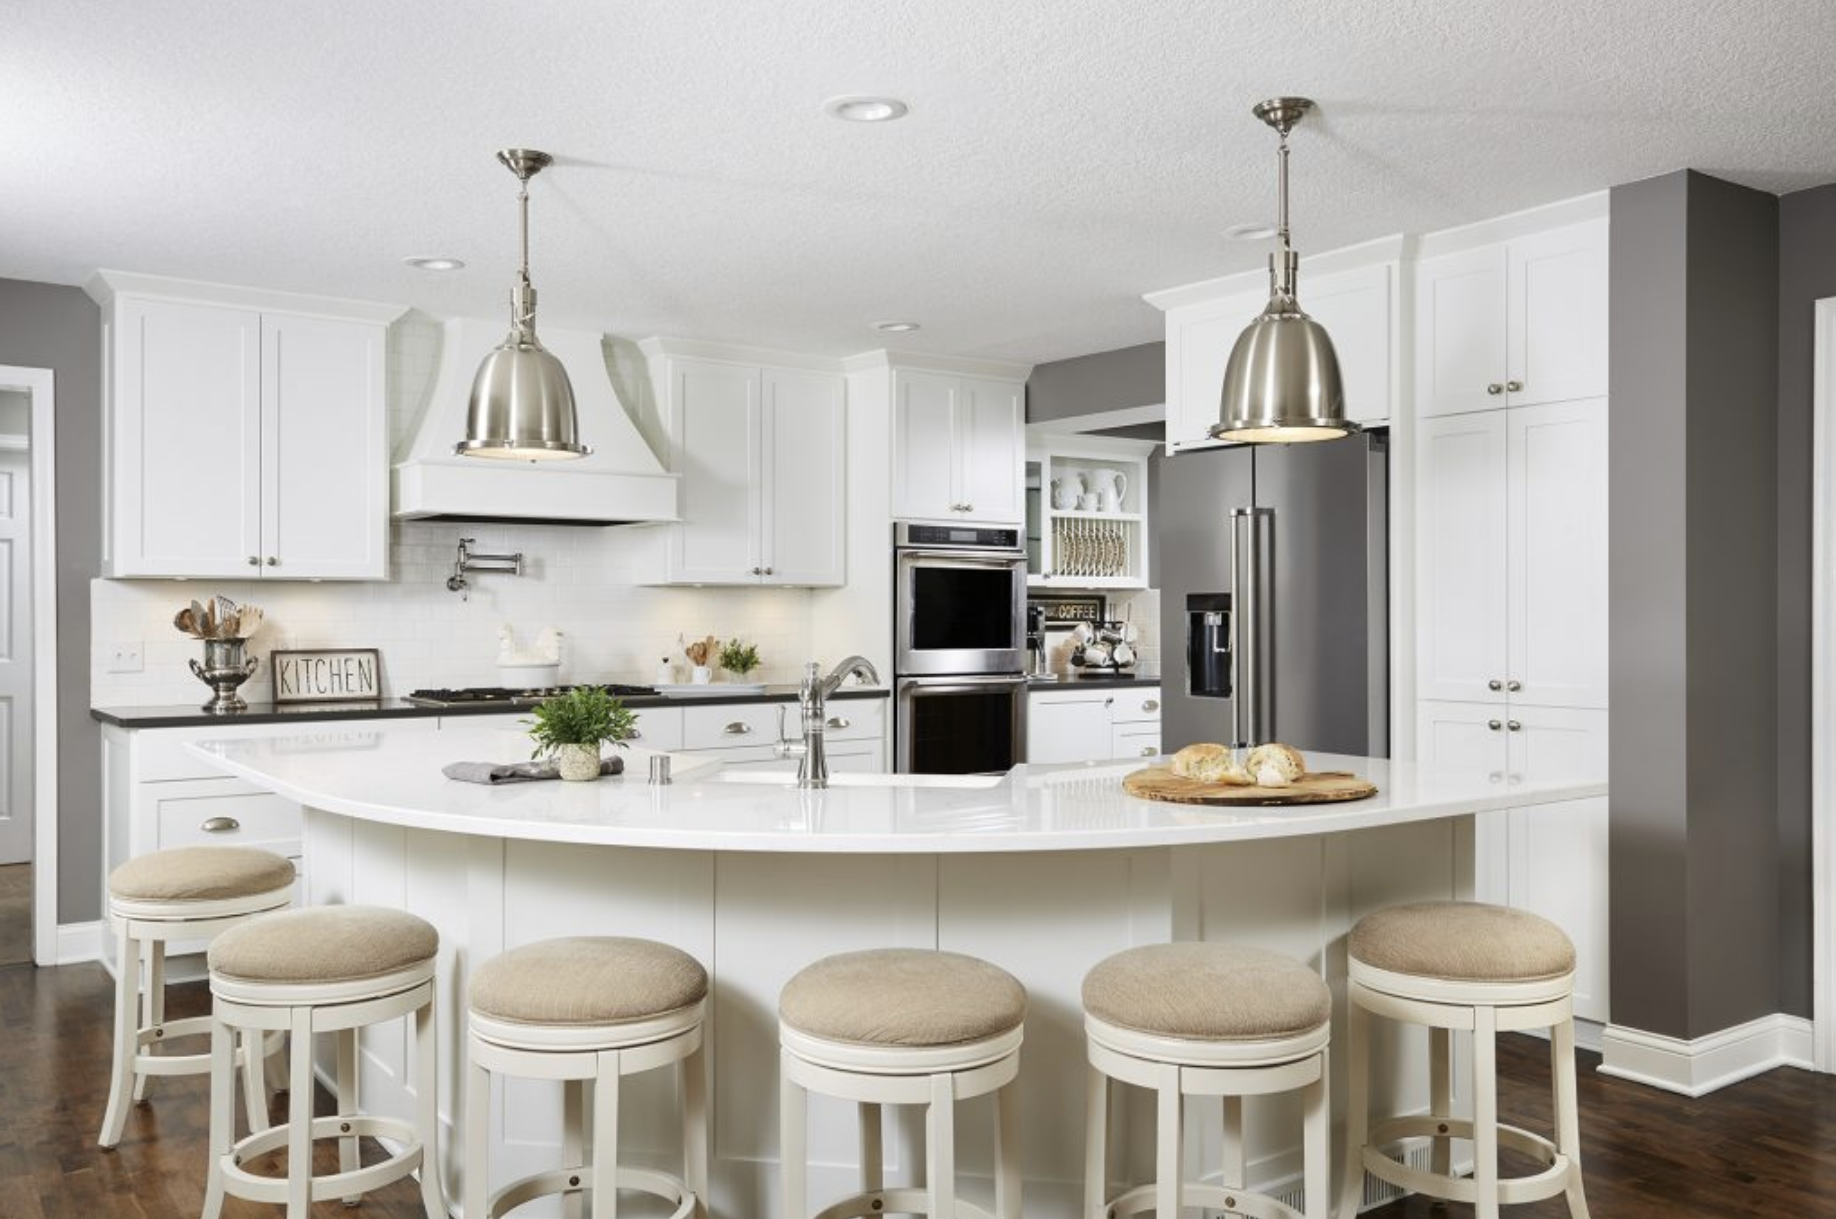 A new rounded kitchen island with ample seating gave this kitchen a contemporary and open vibe.